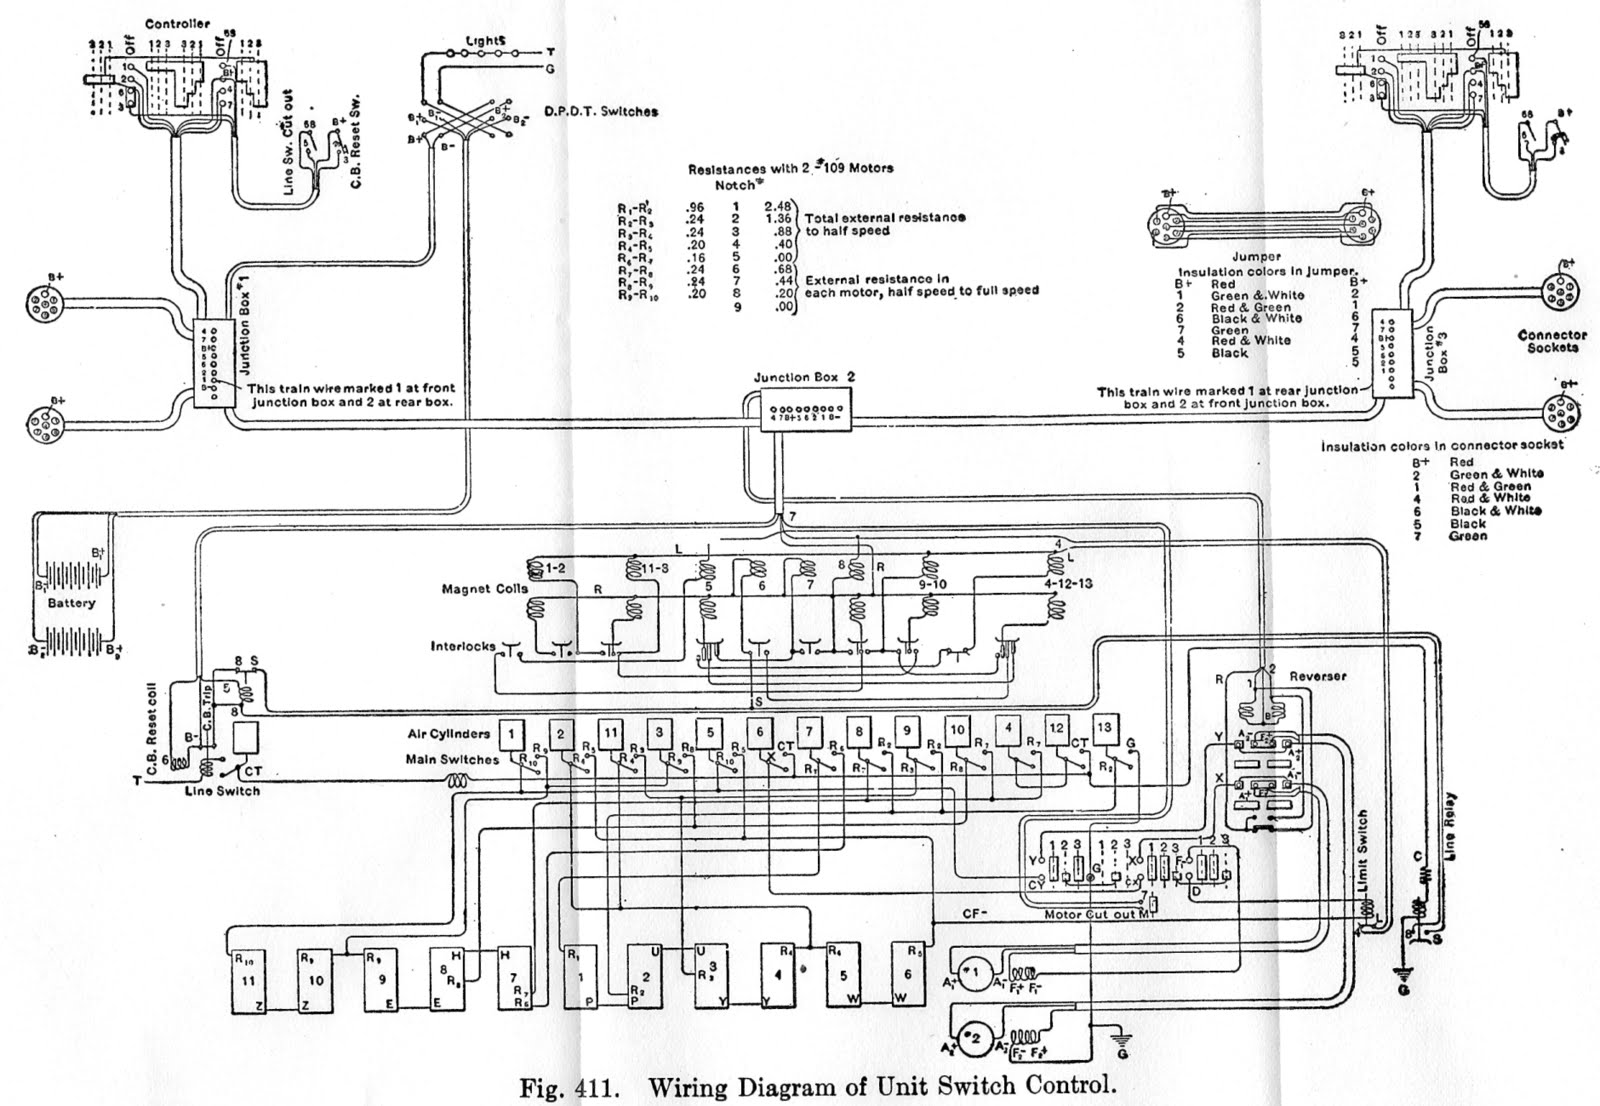 Westinghouse 77020 Wiring Diagram on